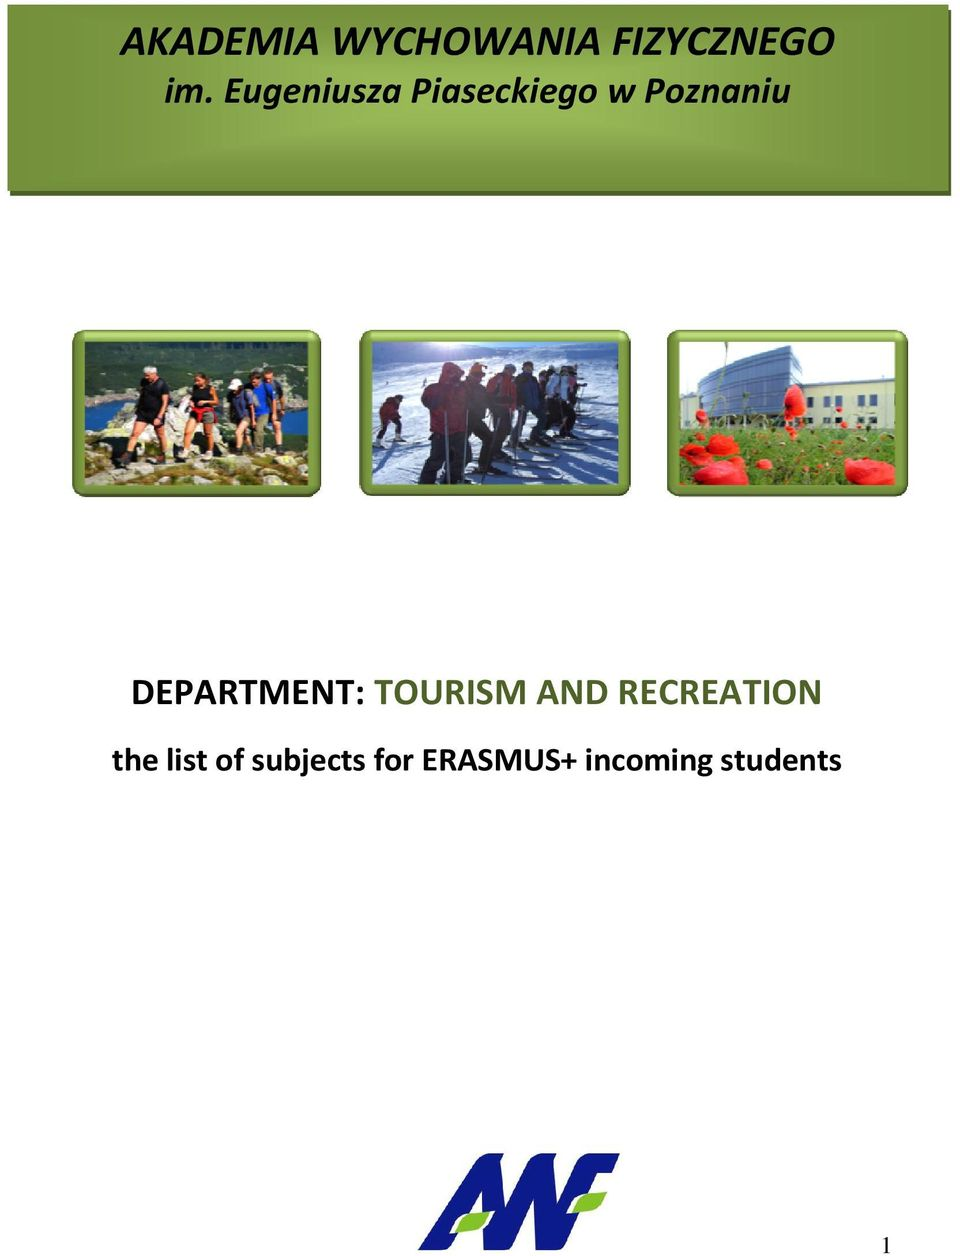 DEPARTMENT: TOURISM AND RECREATION the